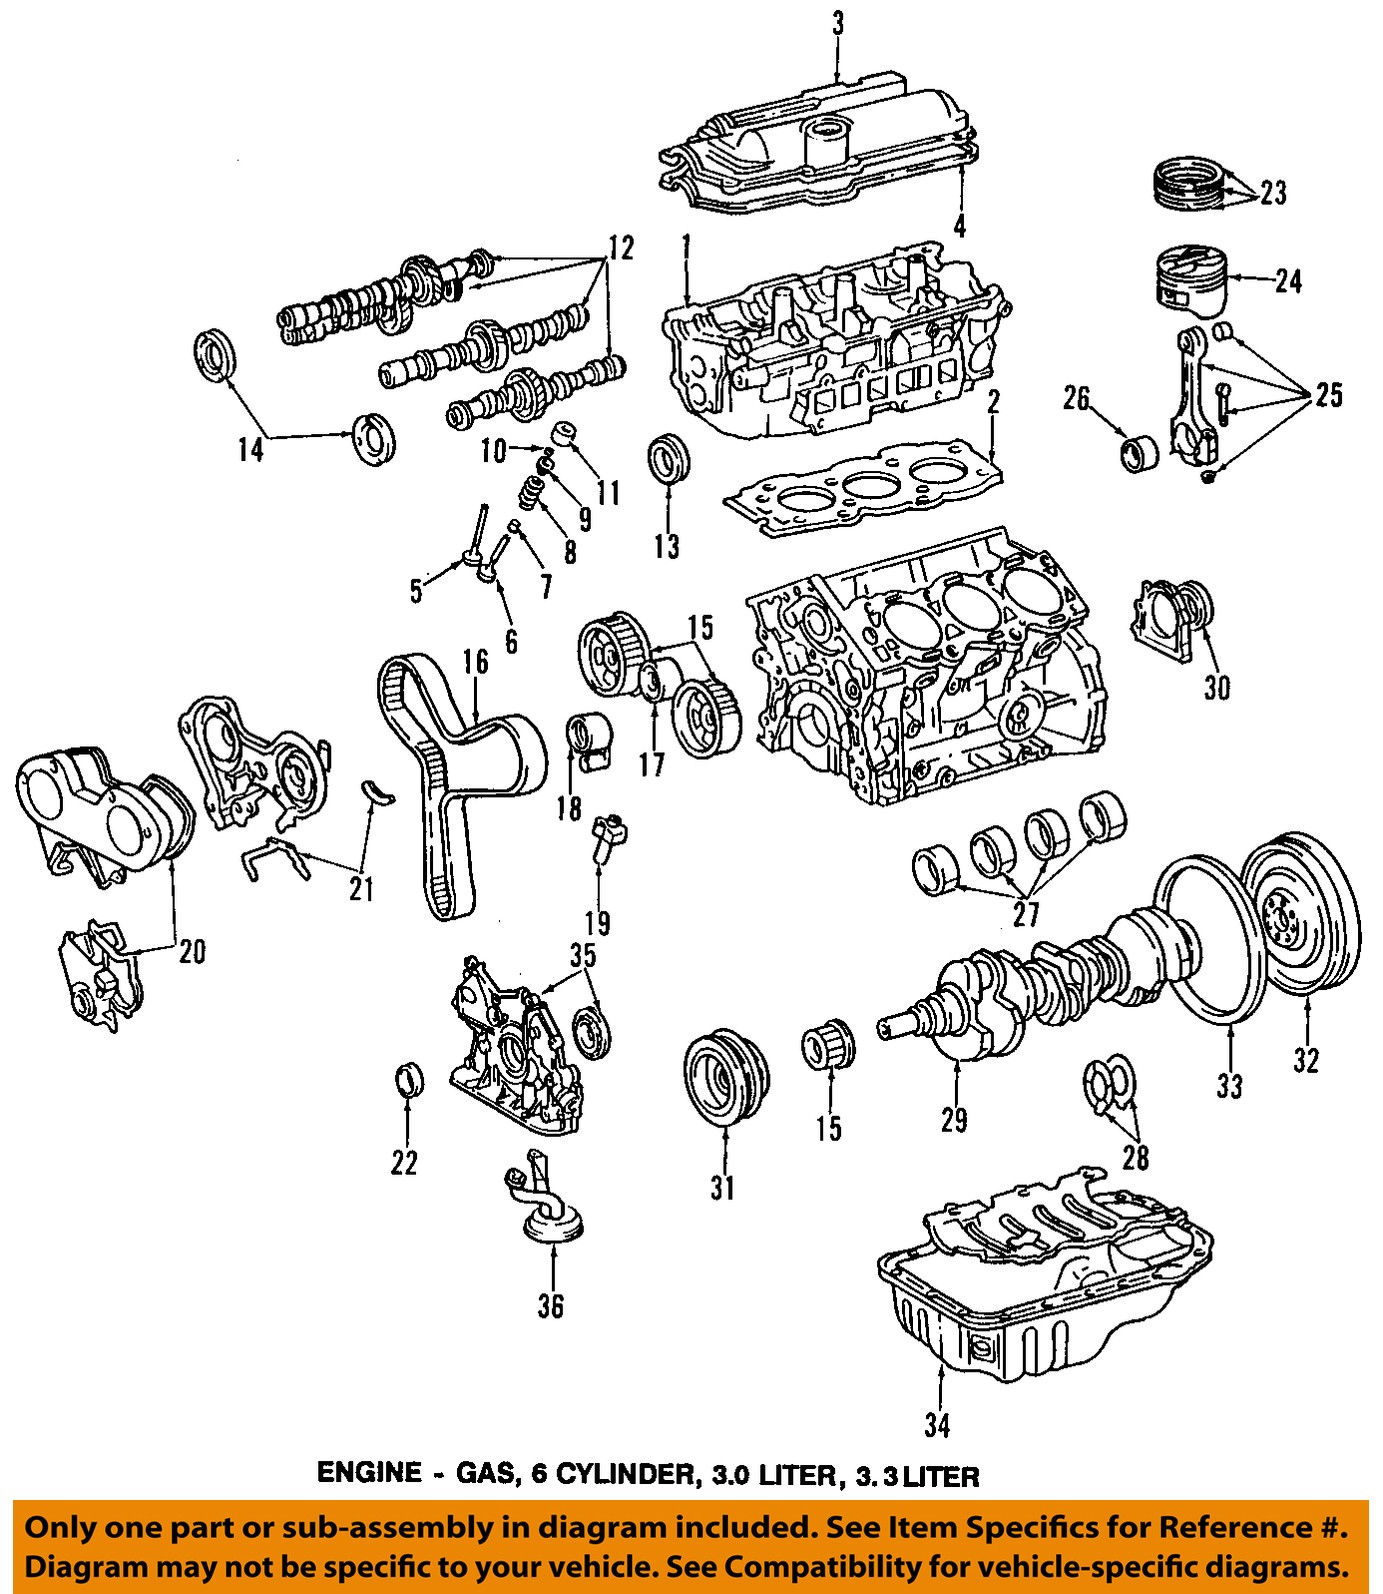 1997 camry engine diagram trusted wiring diagrams Toyota Avalon Air Filter Diagram  Toyota Avalon Fuse Box